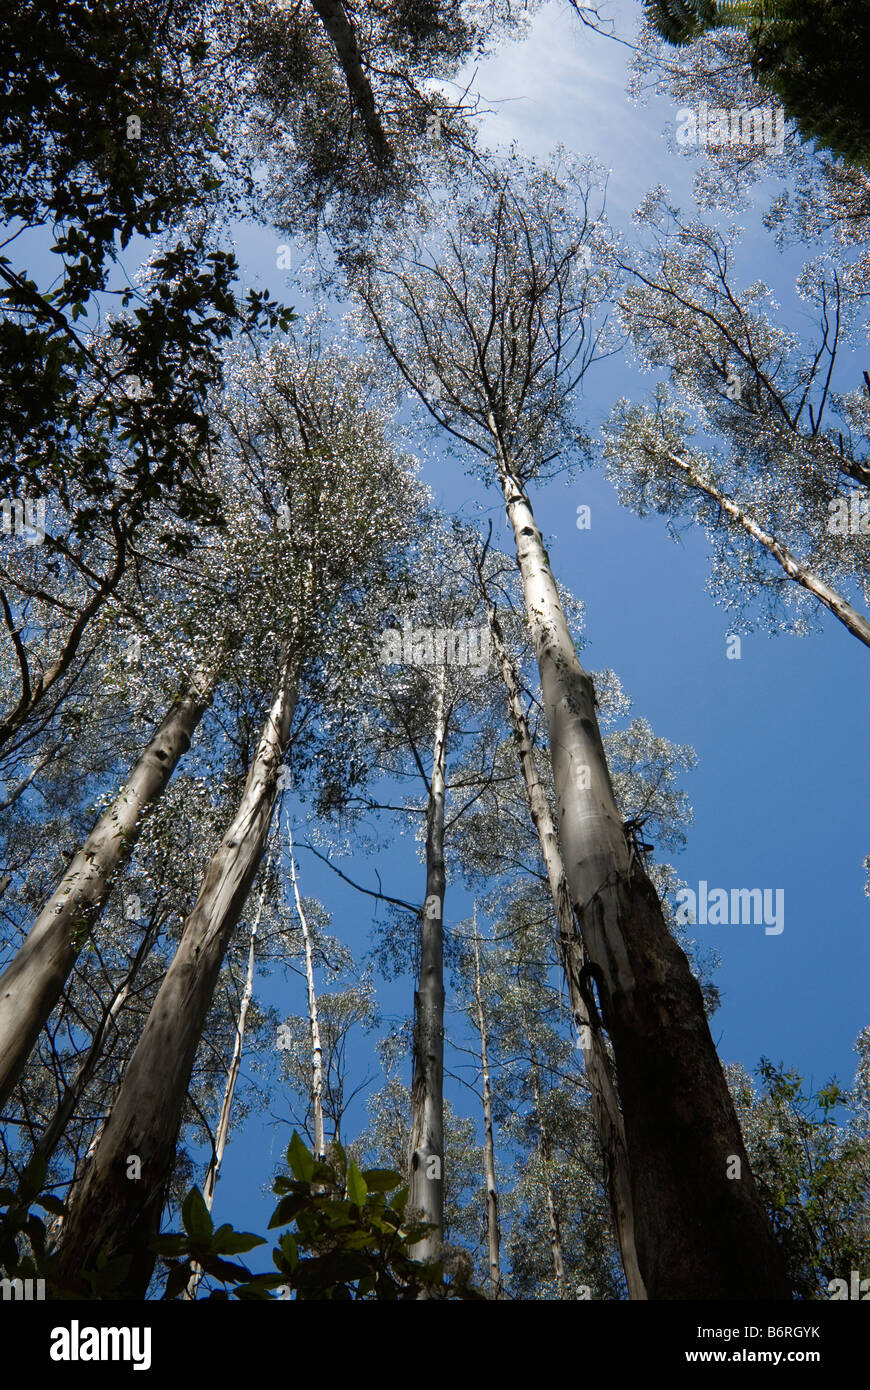 Mountain ash eucalypts in Sherbrooke Forest, Melbourne, Australia - Stock Image